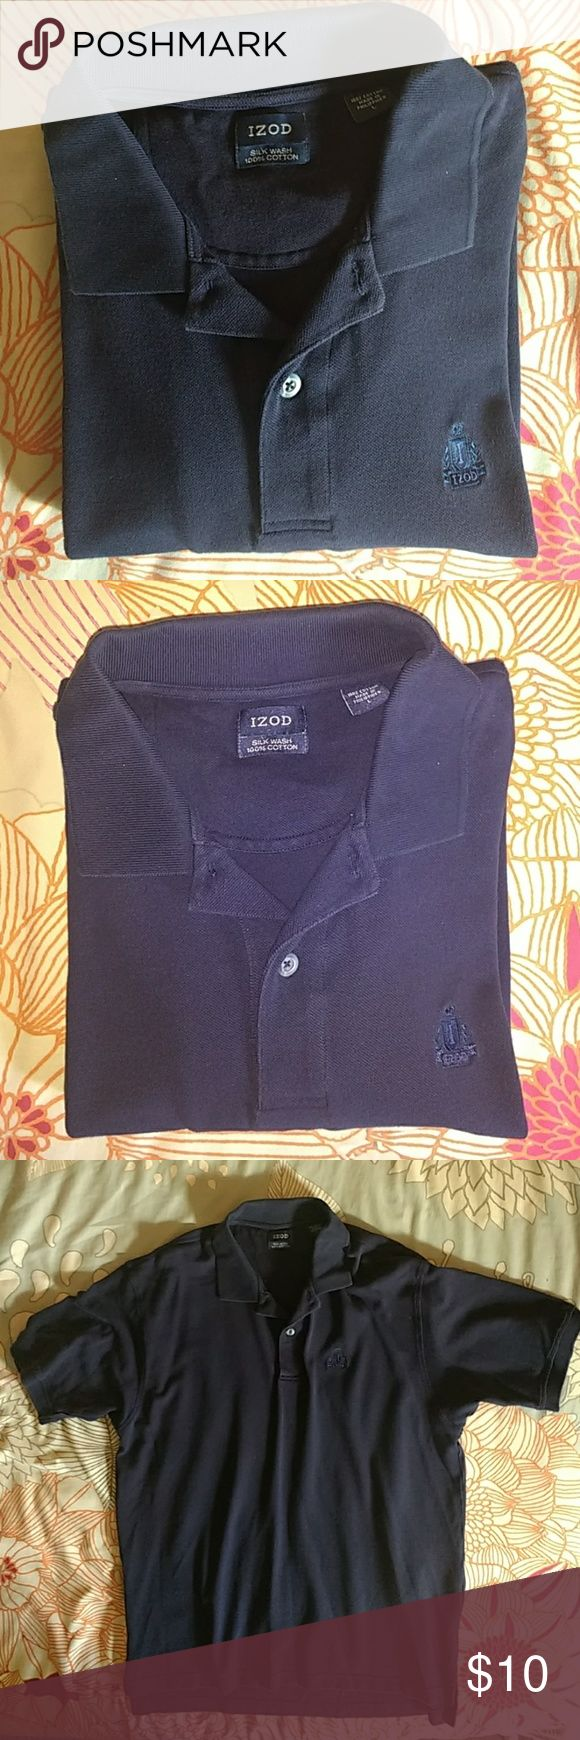 Izod Navy Blue polo shirt size LG 100% cotton Izod Navy Blue polo shirt size LG 100% cotton  Thanks for looking!! Item is preowned and sold as-is, no refunds. Please review photos carefully. Please feel free to ask questions! Izod Shirts Polos